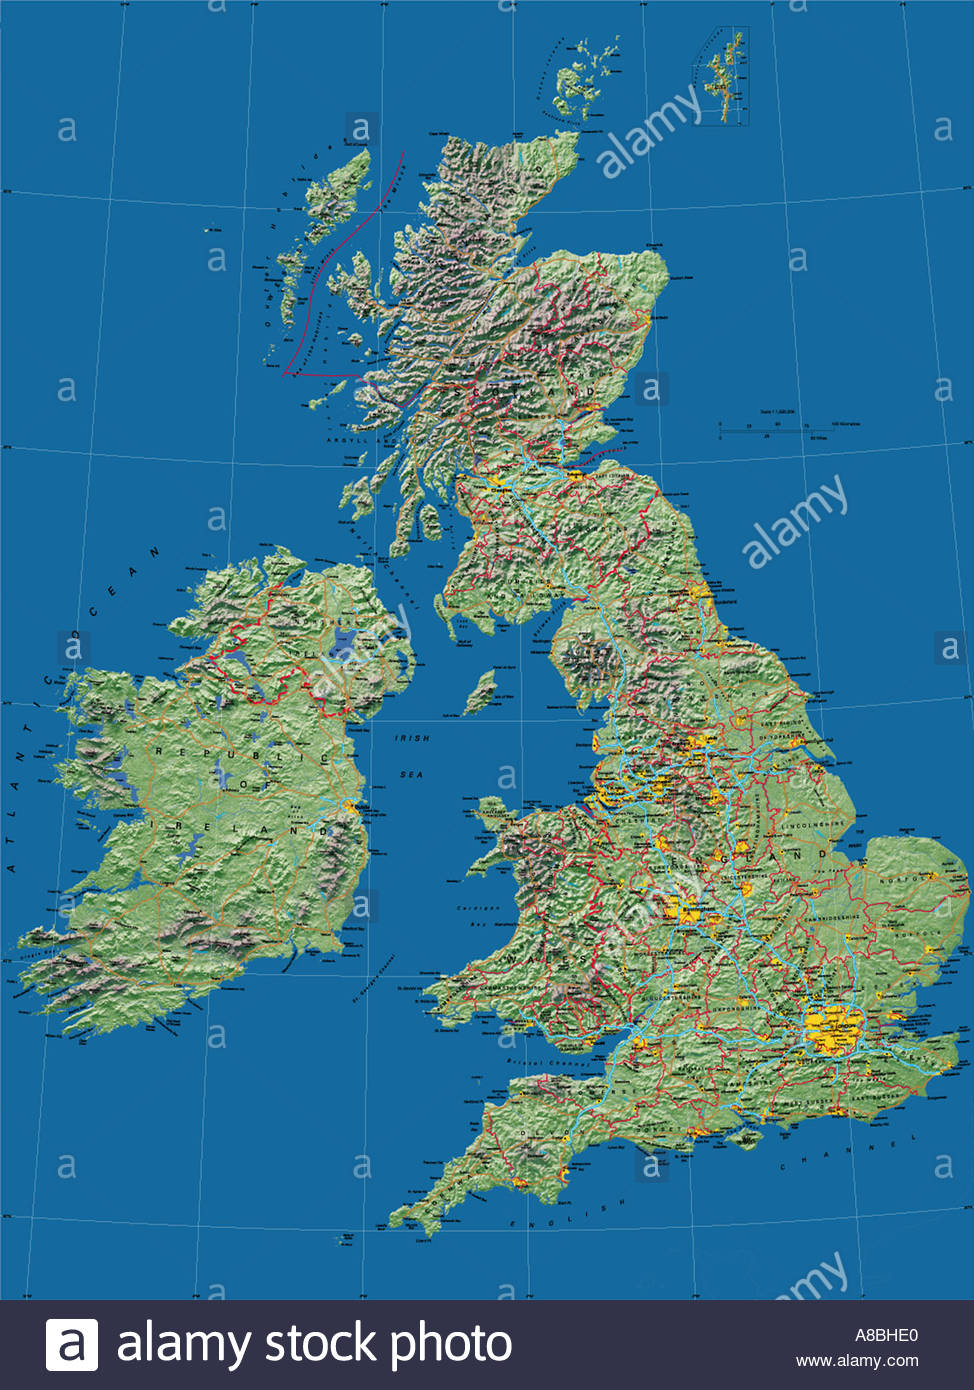 Map Of England Europe.Map Maps Europe United Kingdom England Wales Scotland Ireland Stock